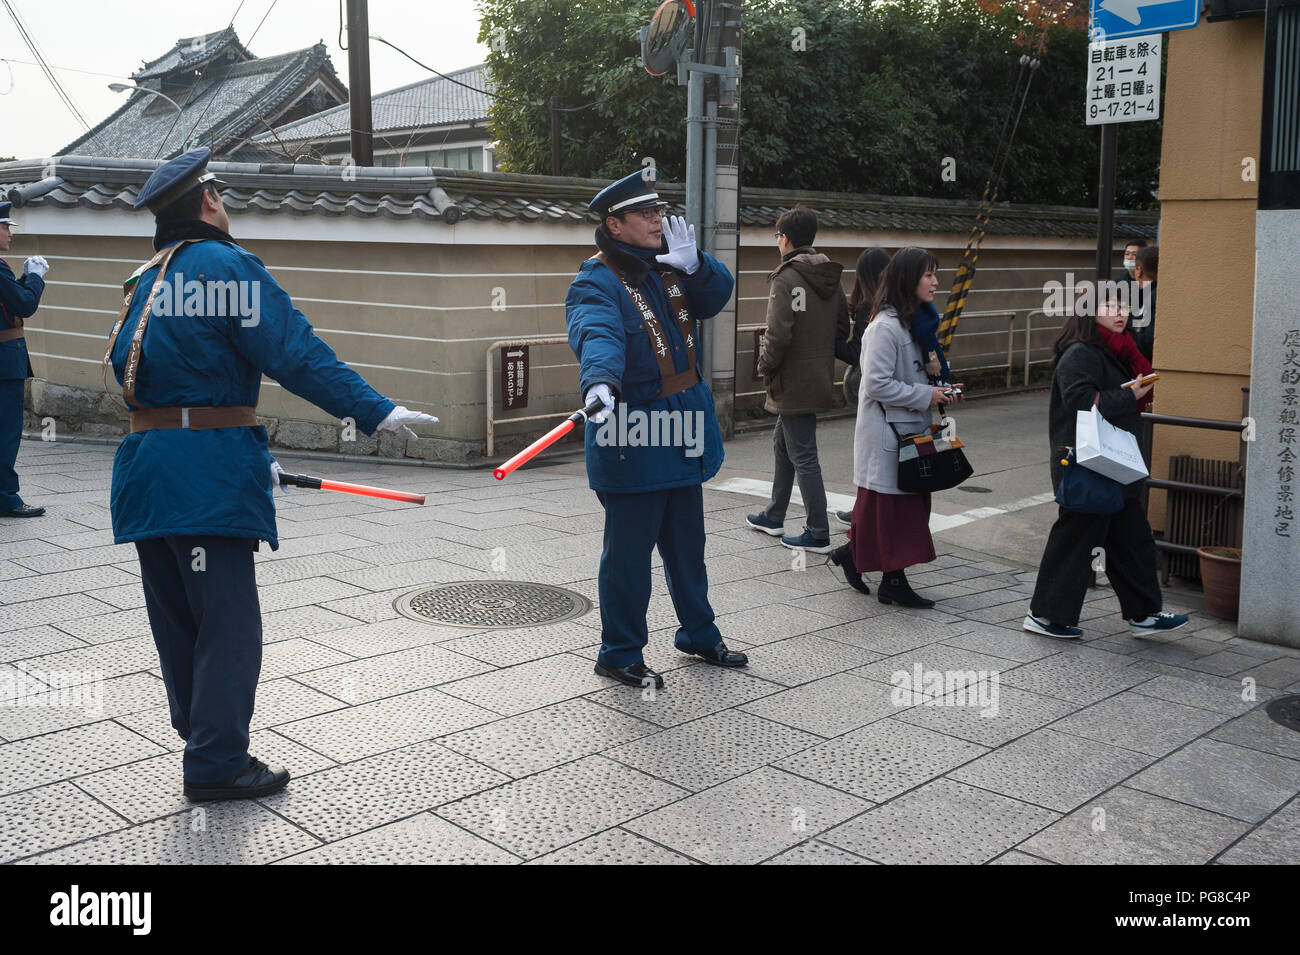 23.12.2017, Kyoto, Japan, Asia - Traffic wardens are seen regulating the flow of traffic at an intersection in Kyoto's old city. - Stock Image